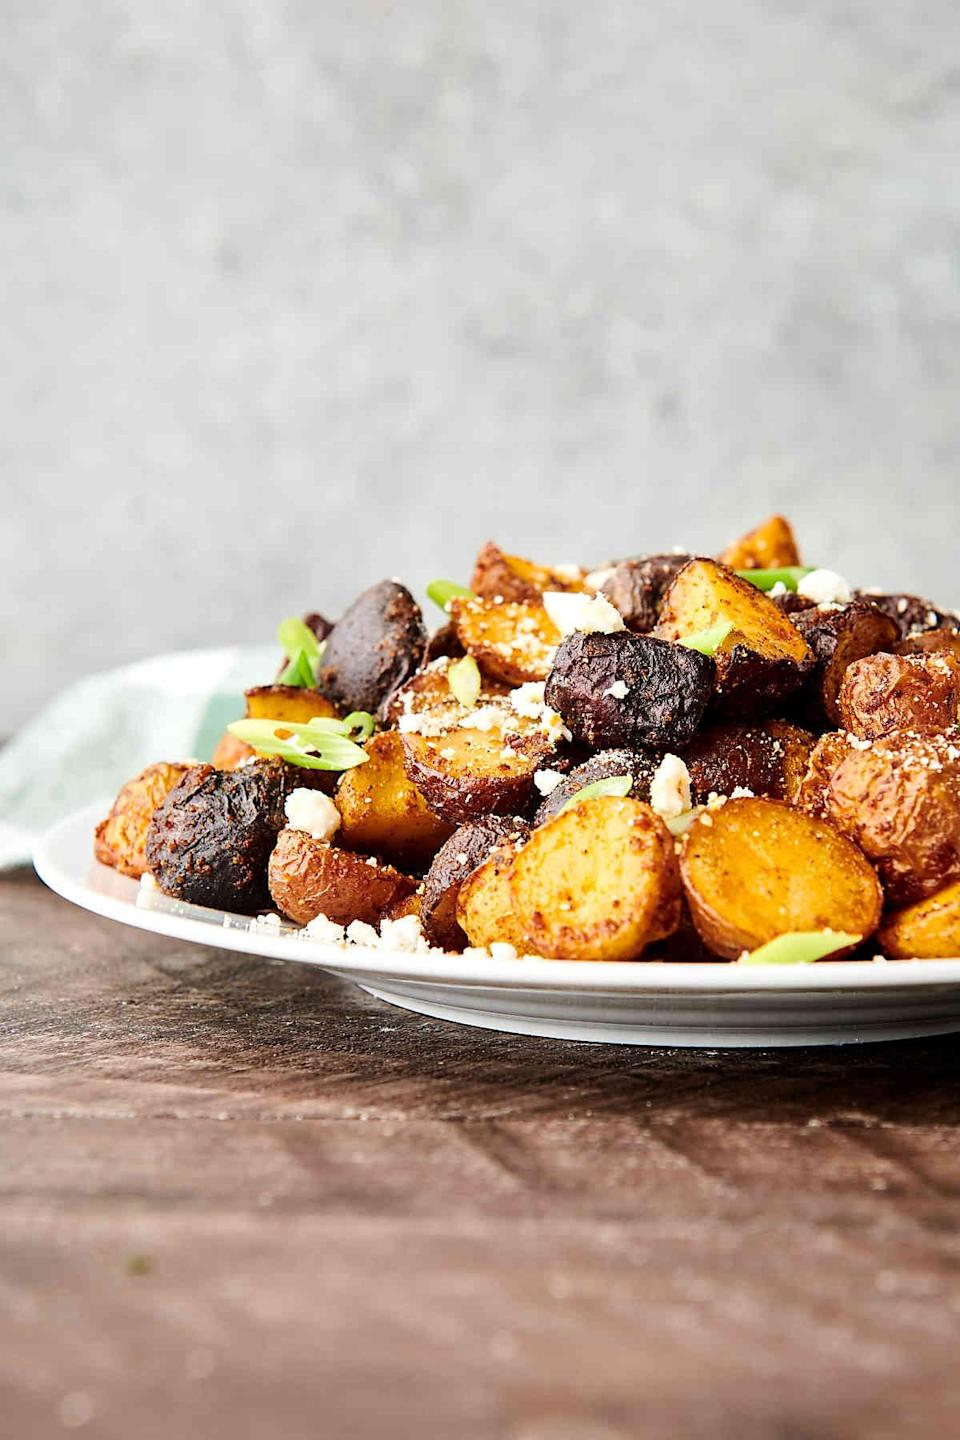 """<p>Wake up right when you have these breakfast potatoes waiting for you. They're fluffy on the inside and crispy on the outside, meaning they pair exceptionally well with ketchup, eggs, and cheese. Enjoy!</p> <p><strong>Get the recipe</strong>: <a href=""""https://showmetheyummy.com/air-fryer-breakfast-potatoes/"""" class=""""link rapid-noclick-resp"""" rel=""""nofollow noopener"""" target=""""_blank"""" data-ylk=""""slk:air fryer breakfast potatoes"""">air fryer breakfast potatoes</a></p>"""